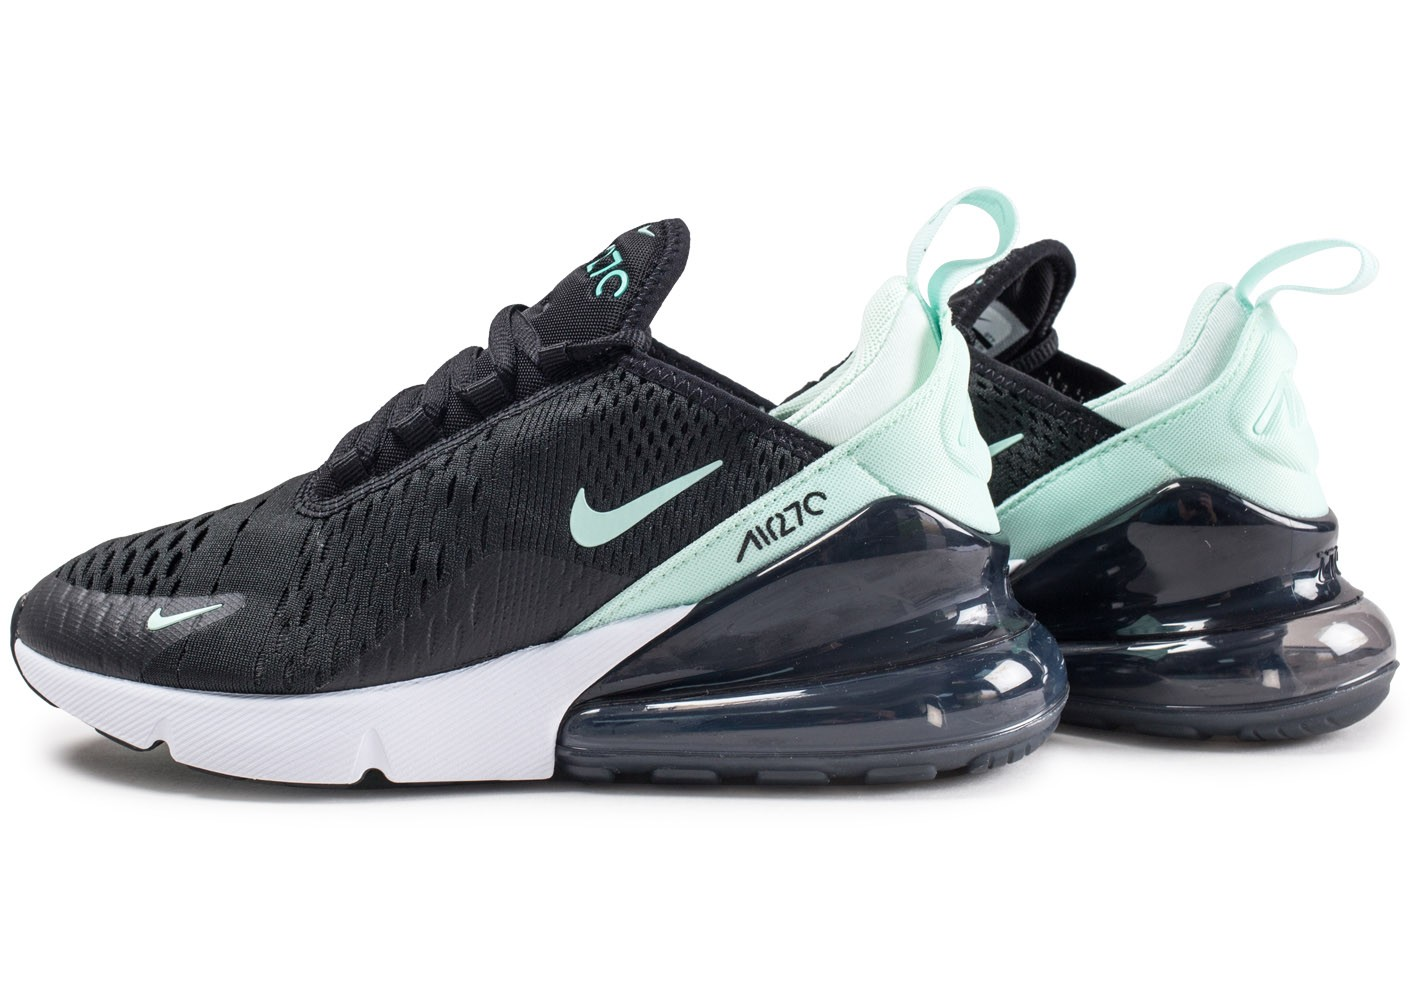 nike air max 270 noire et bleue femme chaussures baskets femme chausport. Black Bedroom Furniture Sets. Home Design Ideas